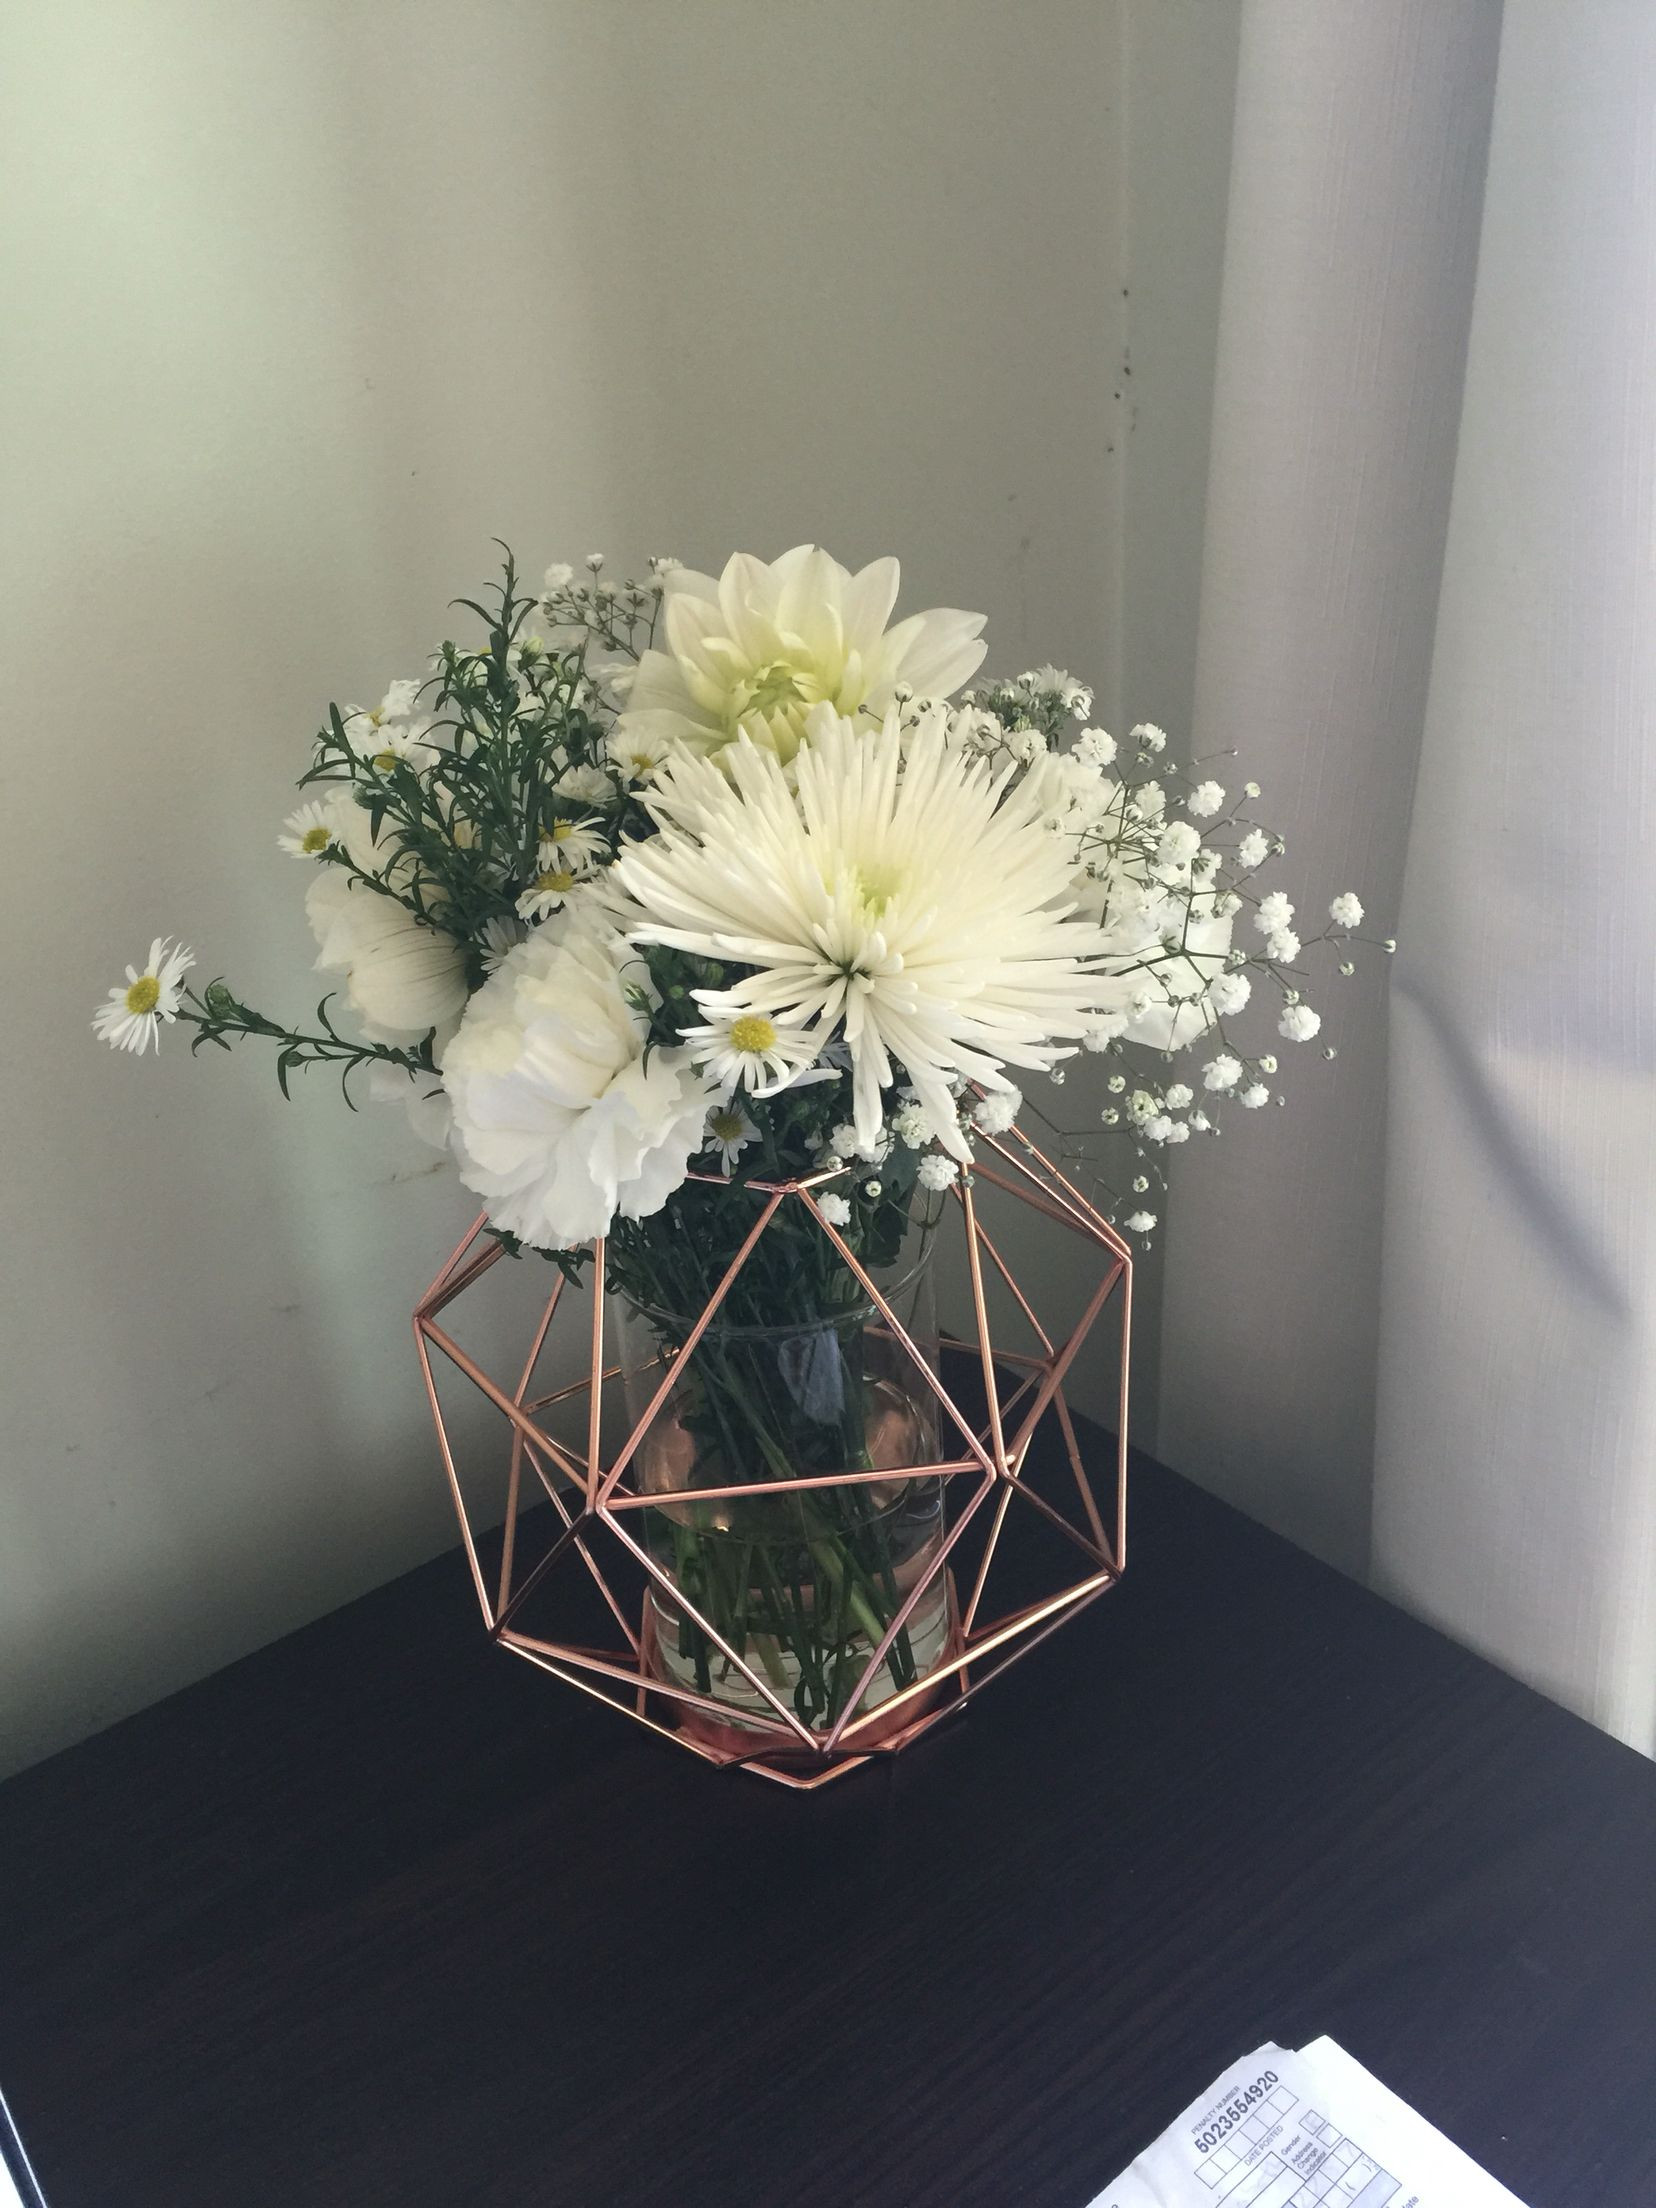 Inexpensive Vases for Centerpieces Of Copper Geometric Candle Holder From Kmart Used as A Vase Wedding In Copper Geometric Candle Holder From Kmart Used as A Vase